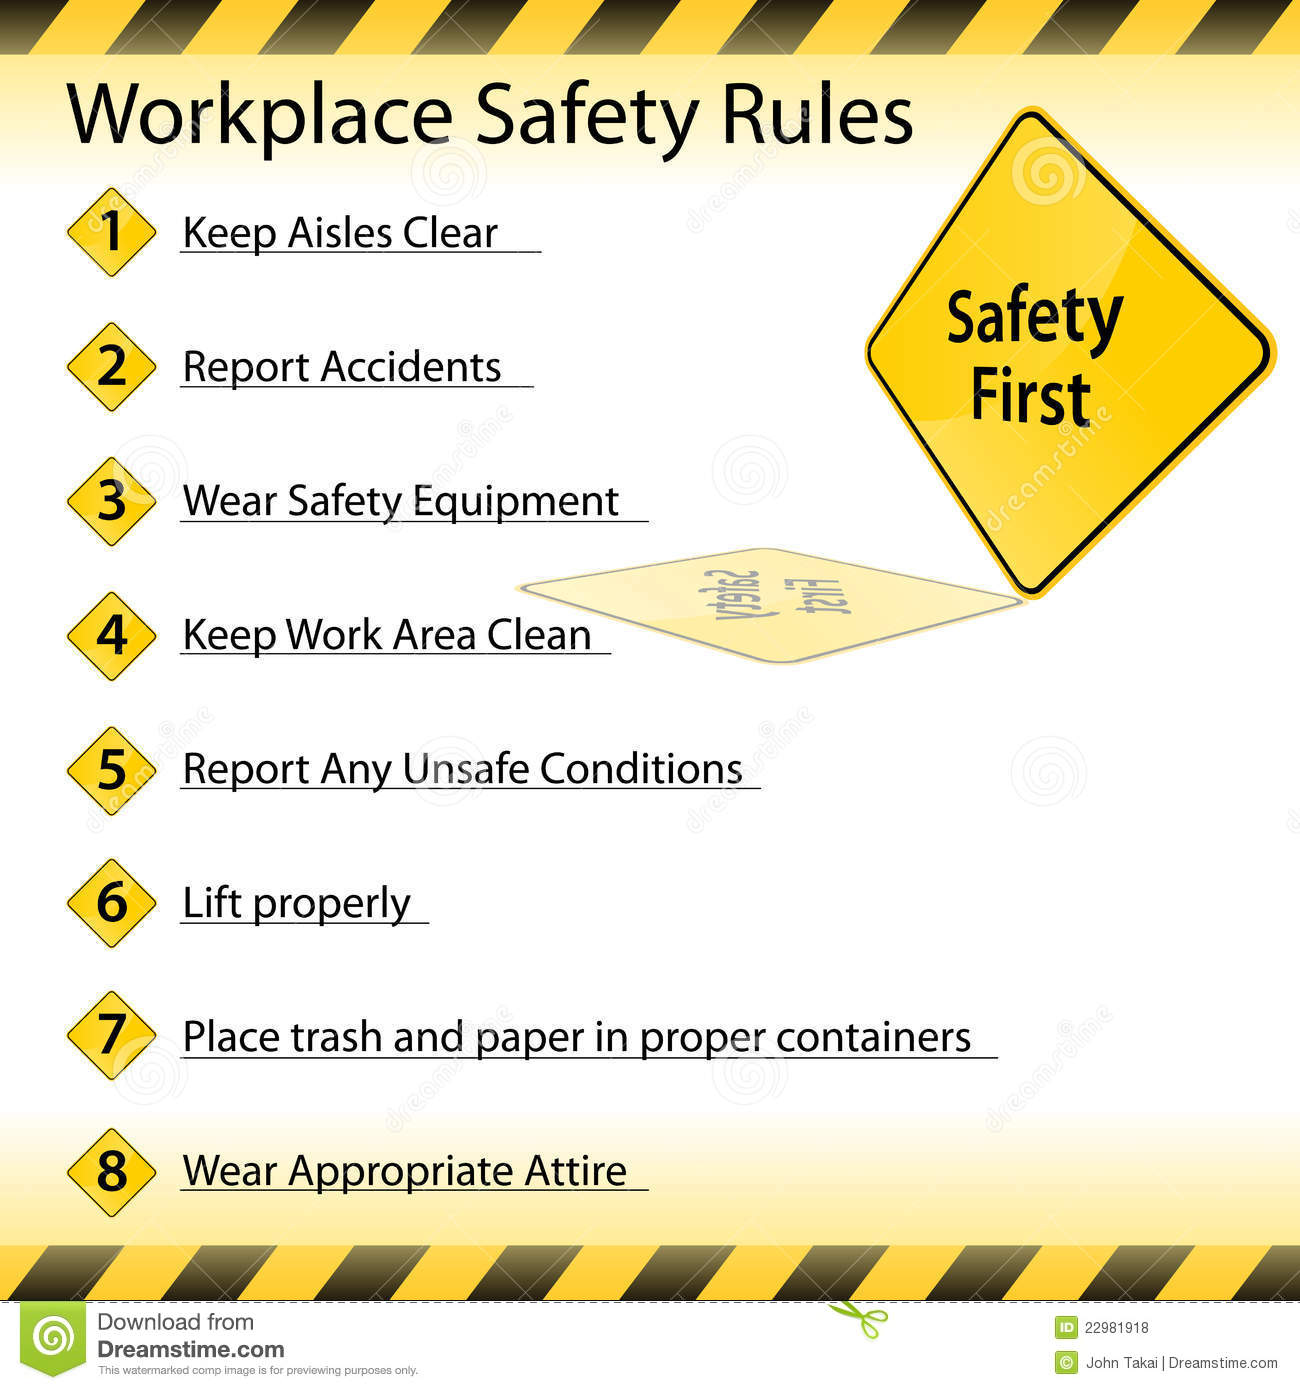 occupational safety rules The federal occupational safety and health act, also called osha, requires employers to provide a safe working environment for employees many states also have their own workplace safety law in order to comply with osha, employers must learn their obligations -- and find out whether they must.